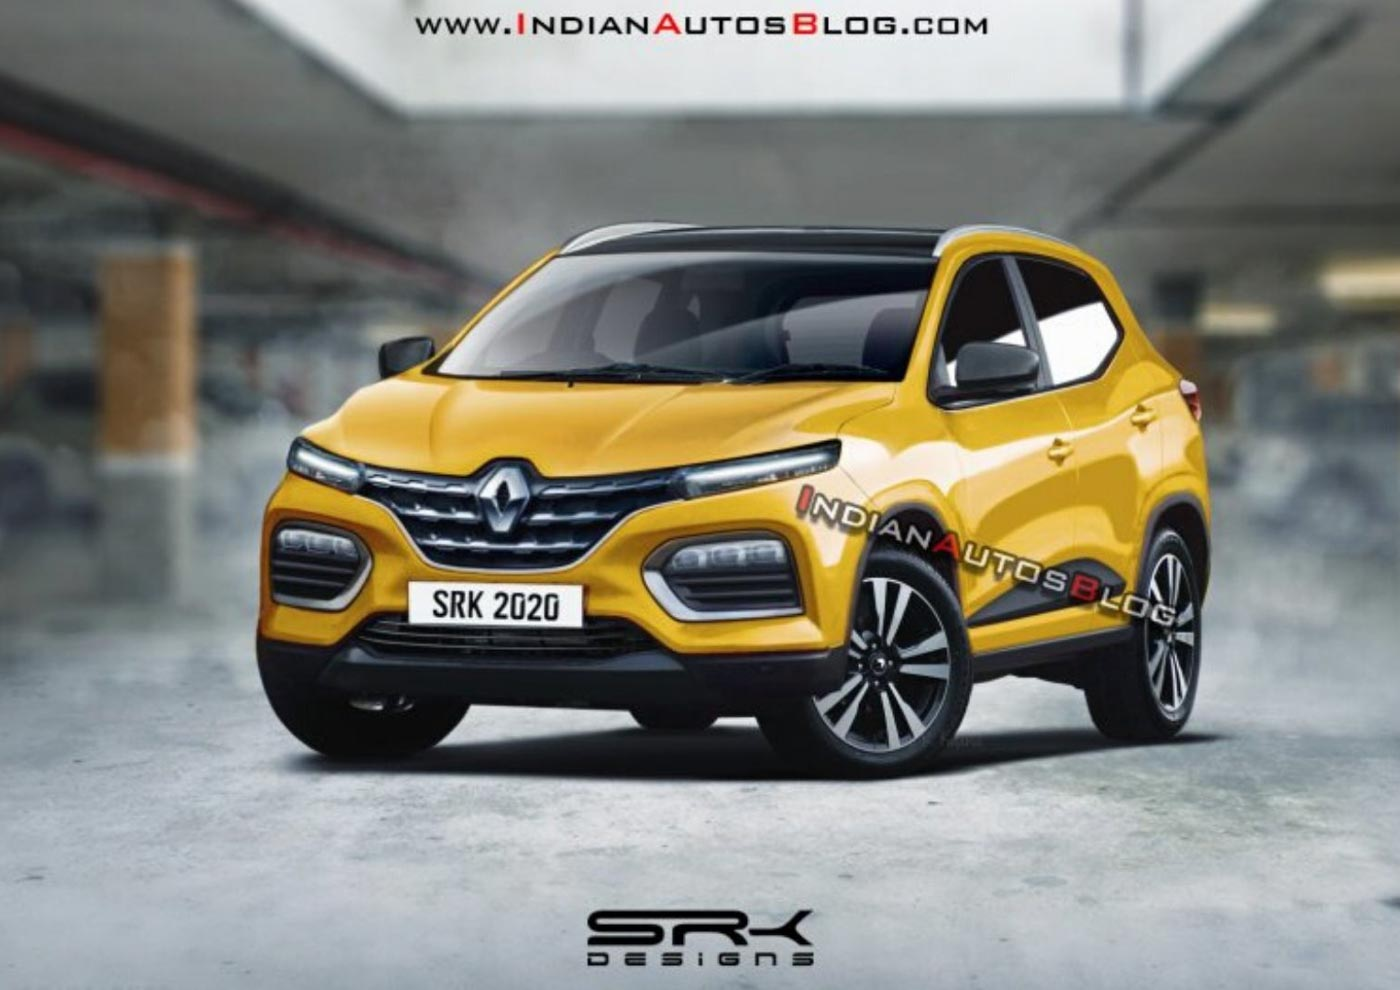 Renault Kiger HBC (Triber Based) Compact SUV Imagined In New Rendering